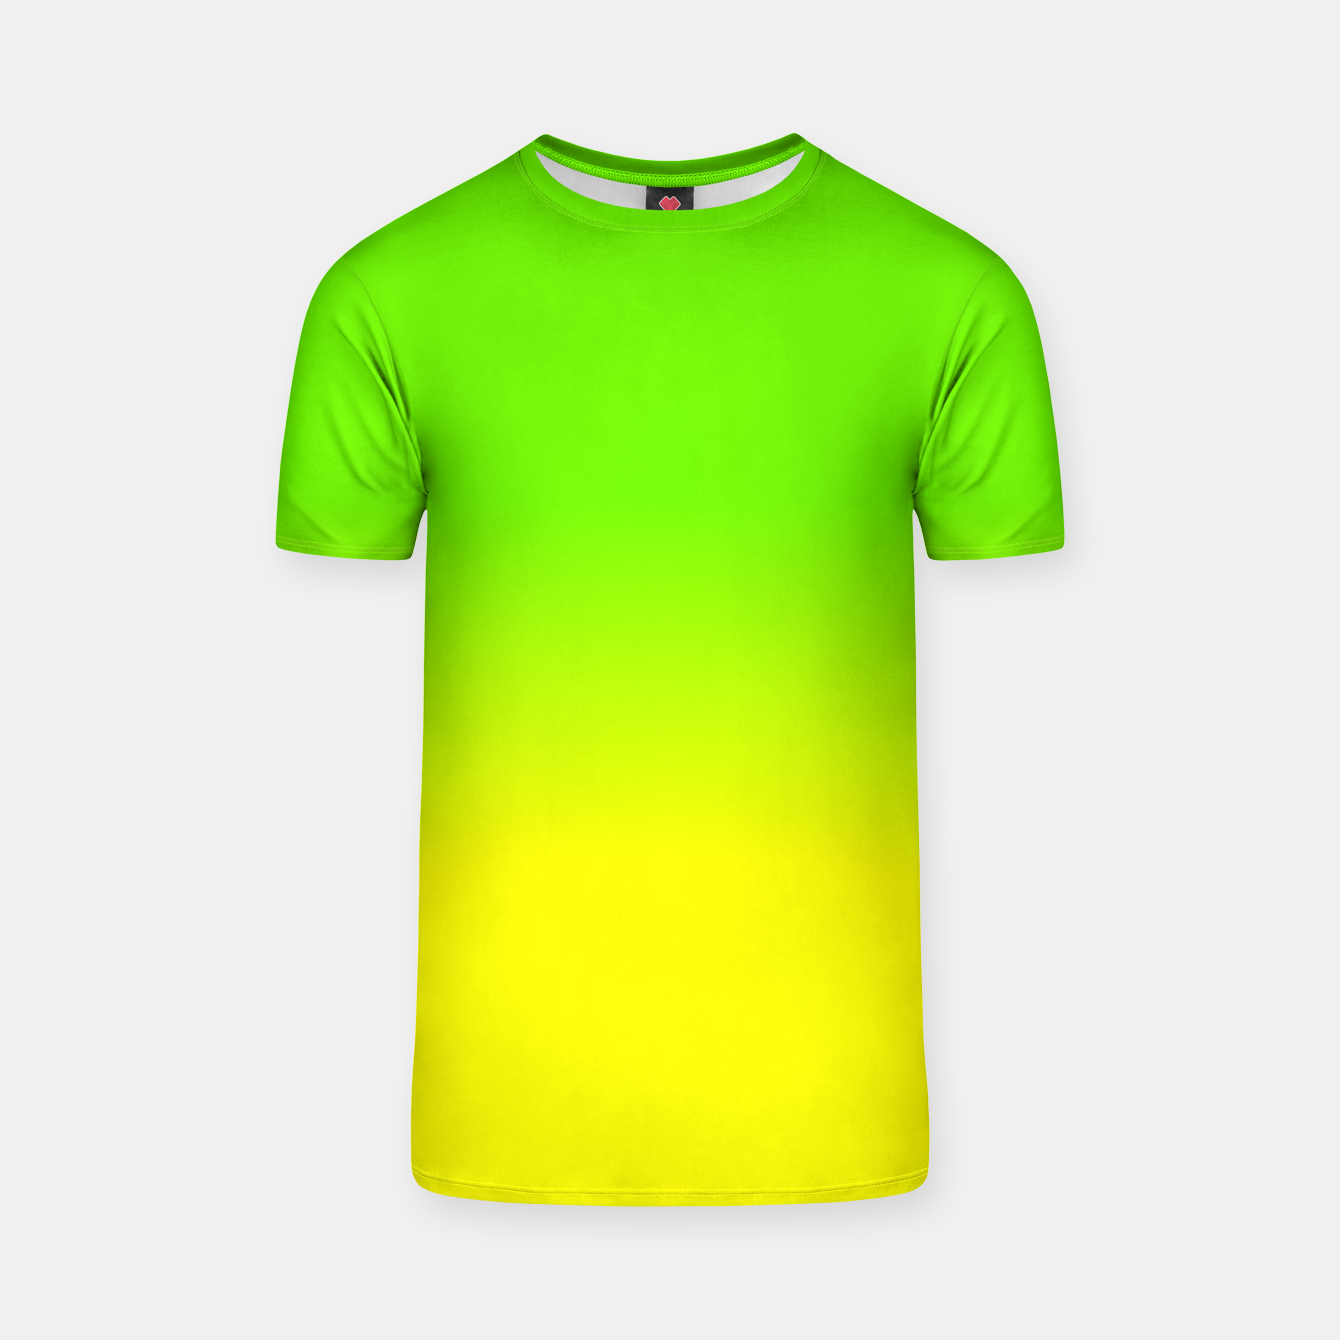 neon green and neon yellow ombré shade color fade t shirt live heroes